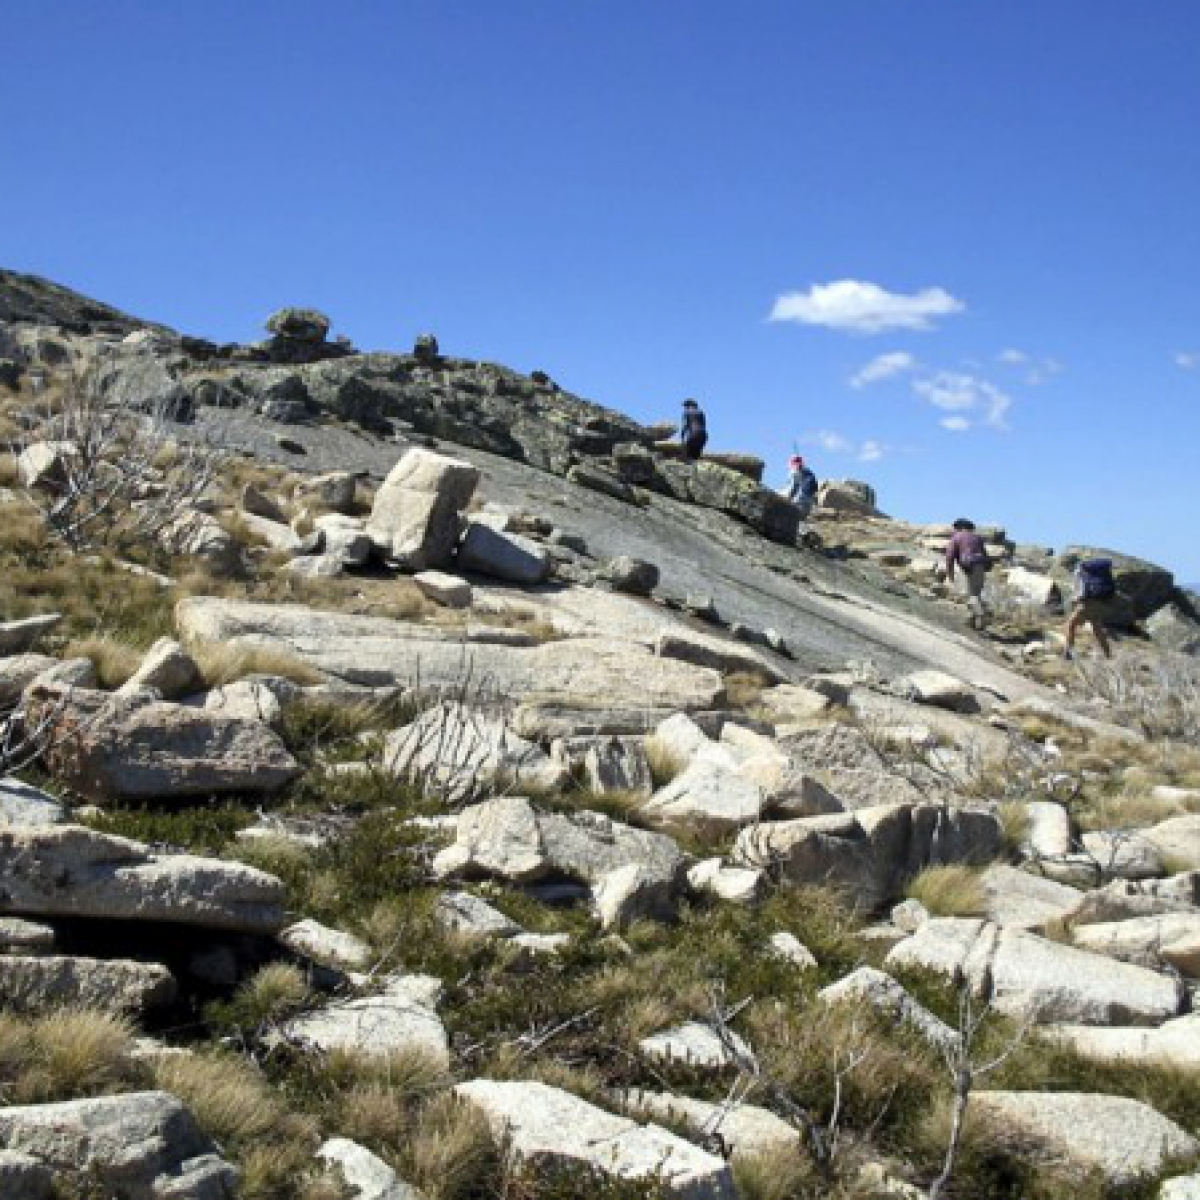 Ascending Mt Kelly - October 2005 - Namadgi National Park